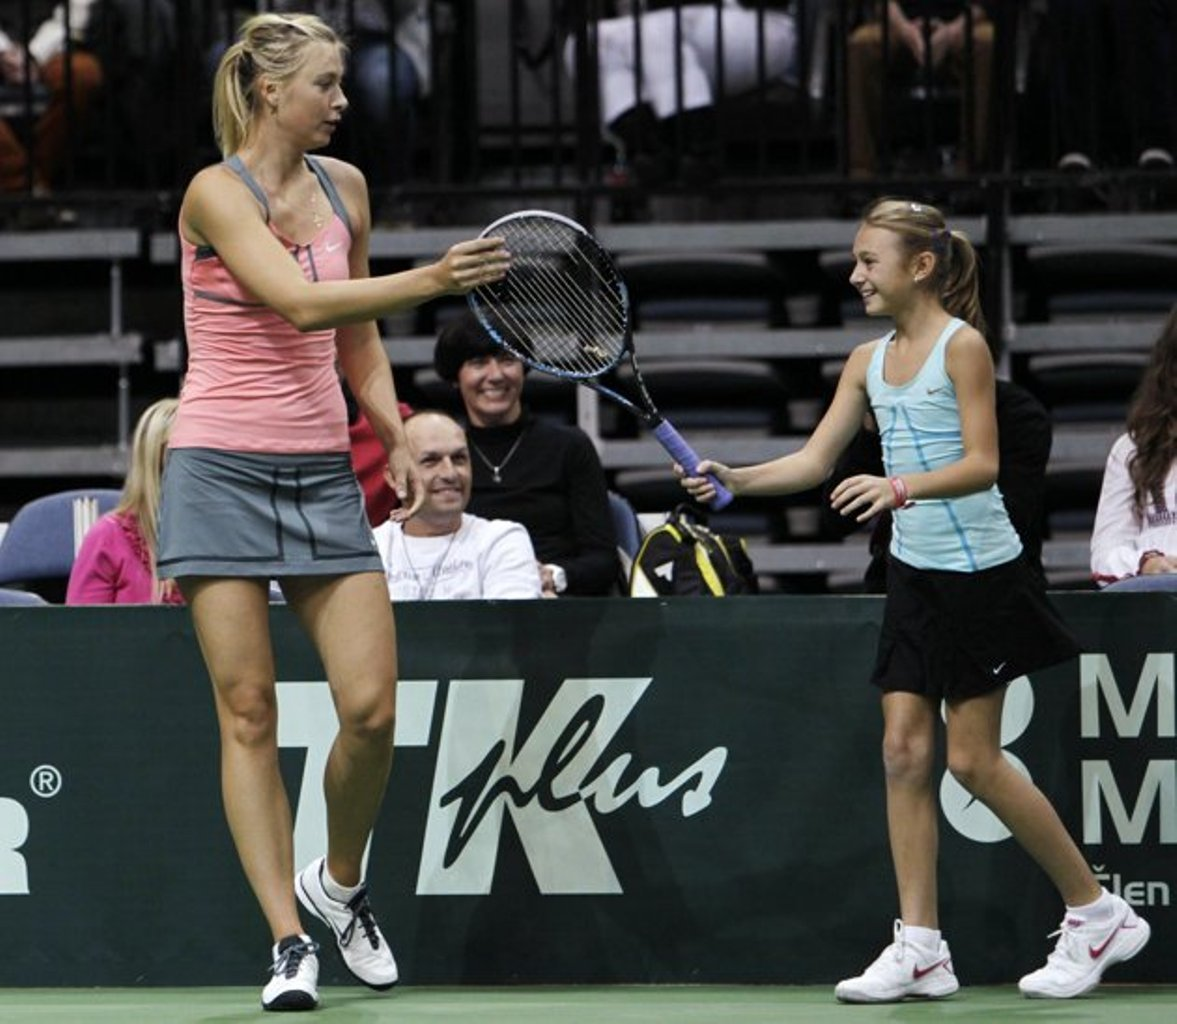 Sharapova played with small girl